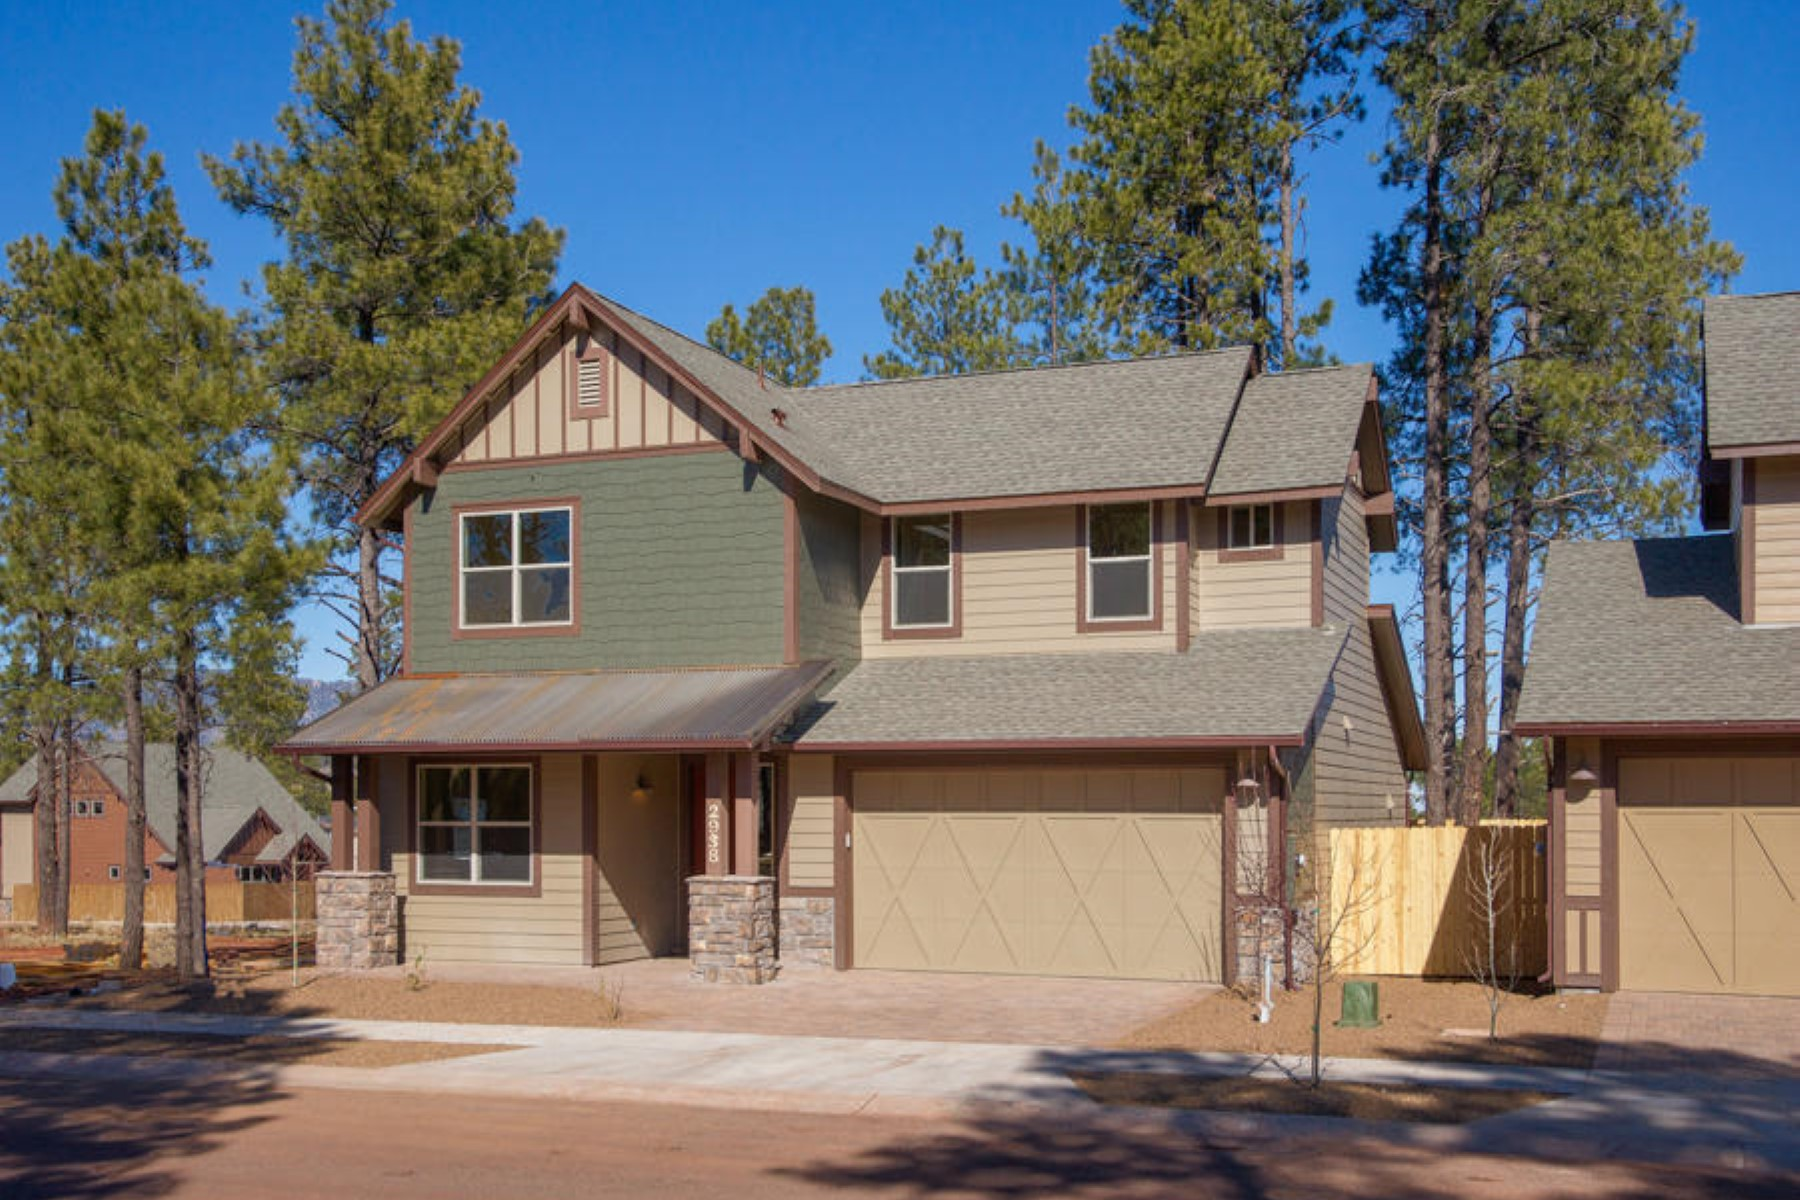 Single Family Home for Sale at 1667 plan is another homebuyer favorite featuring a functional and open layout 2841 W Pico Del Monte Lot 21b CIR Flagstaff, Arizona 86001 United States